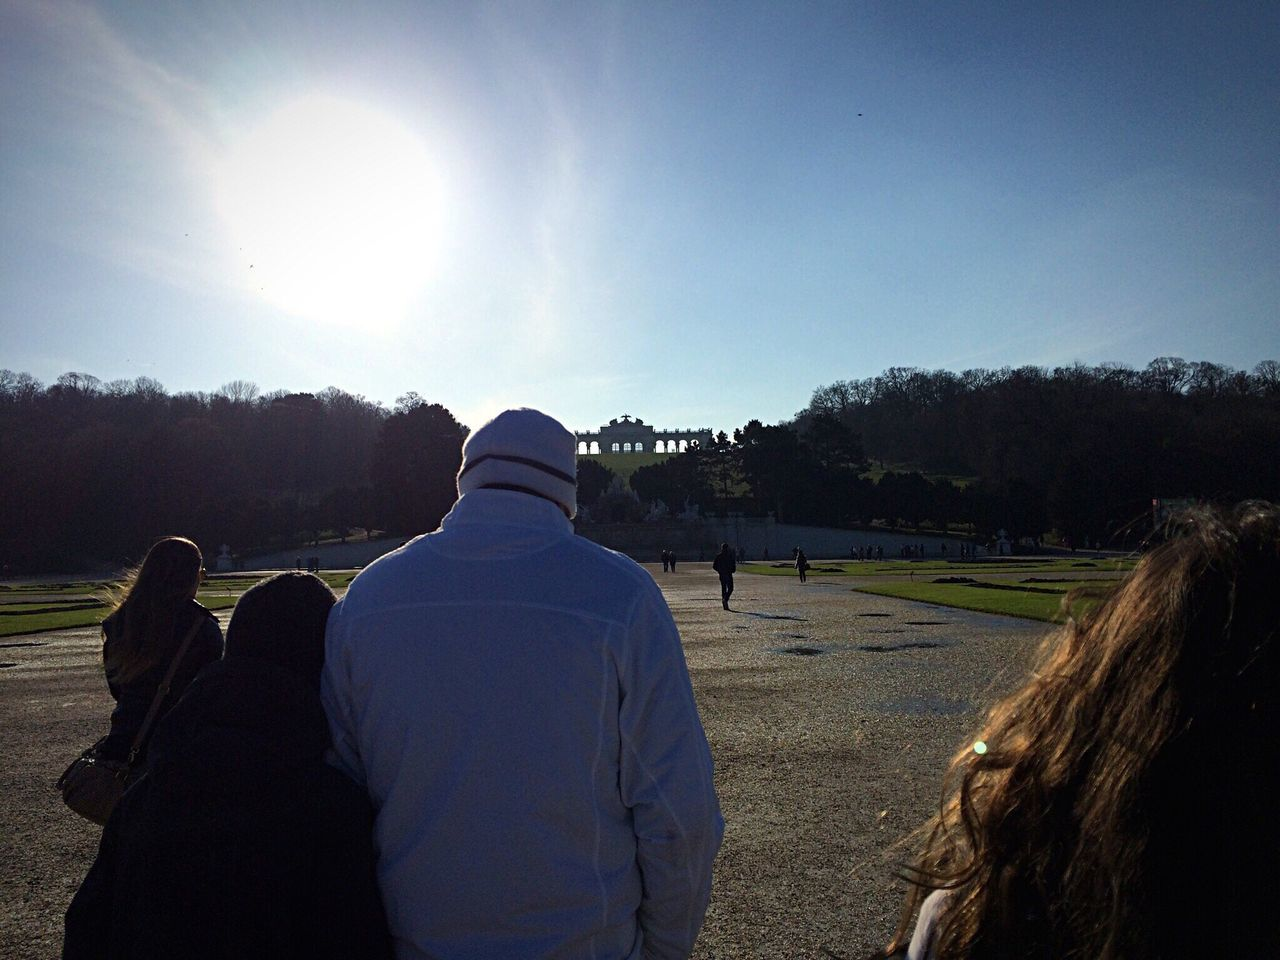 rear view, sunlight, real people, togetherness, men, sky, nature, lifestyles, clear sky, tree, day, outdoors, people